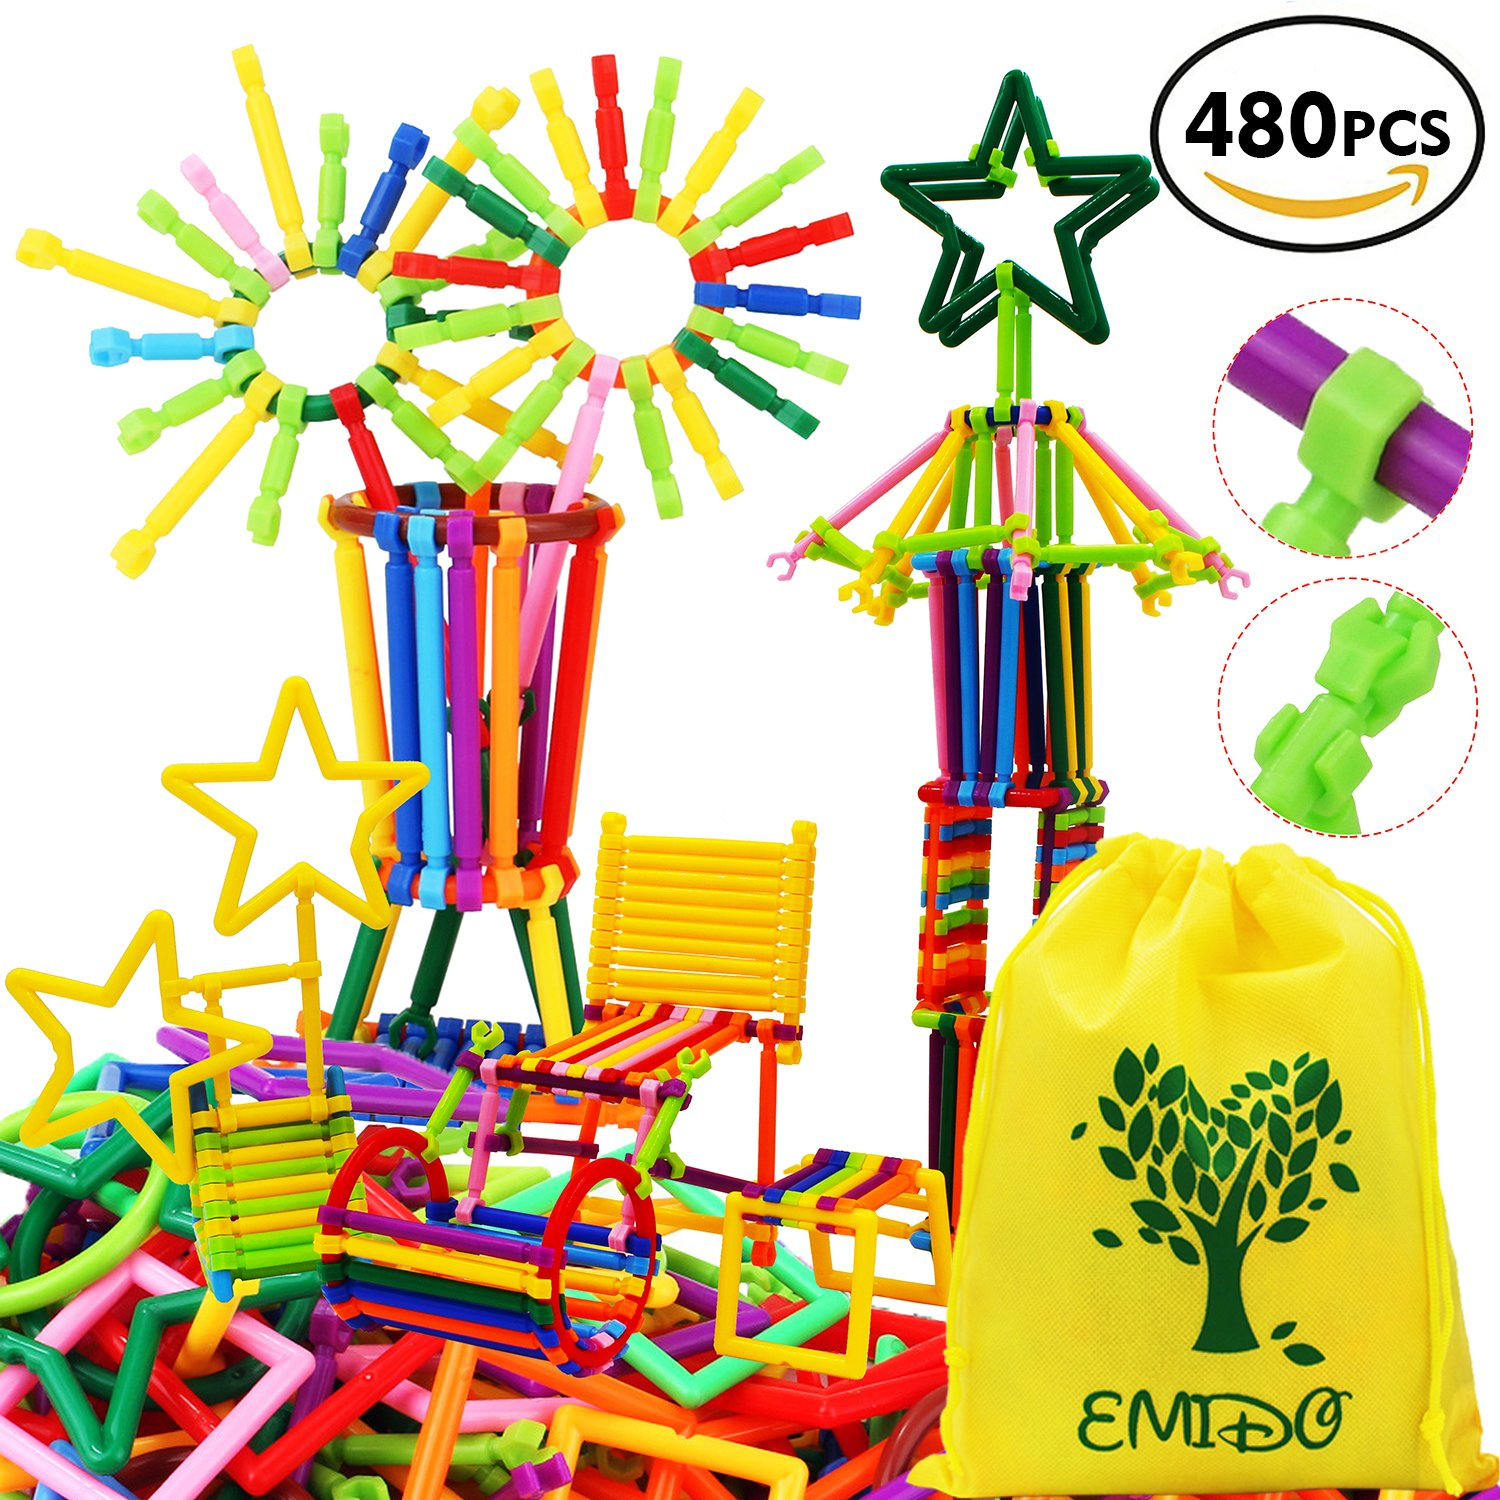 EMIDO 480 Pcs Building Toy Building Blocks Bars Different Shape Educational Construction Engineering Set 3D Puzzle , Interlocking Creative Connecting Kit, A Great STEM Toy for Both Boys and Girls! Review